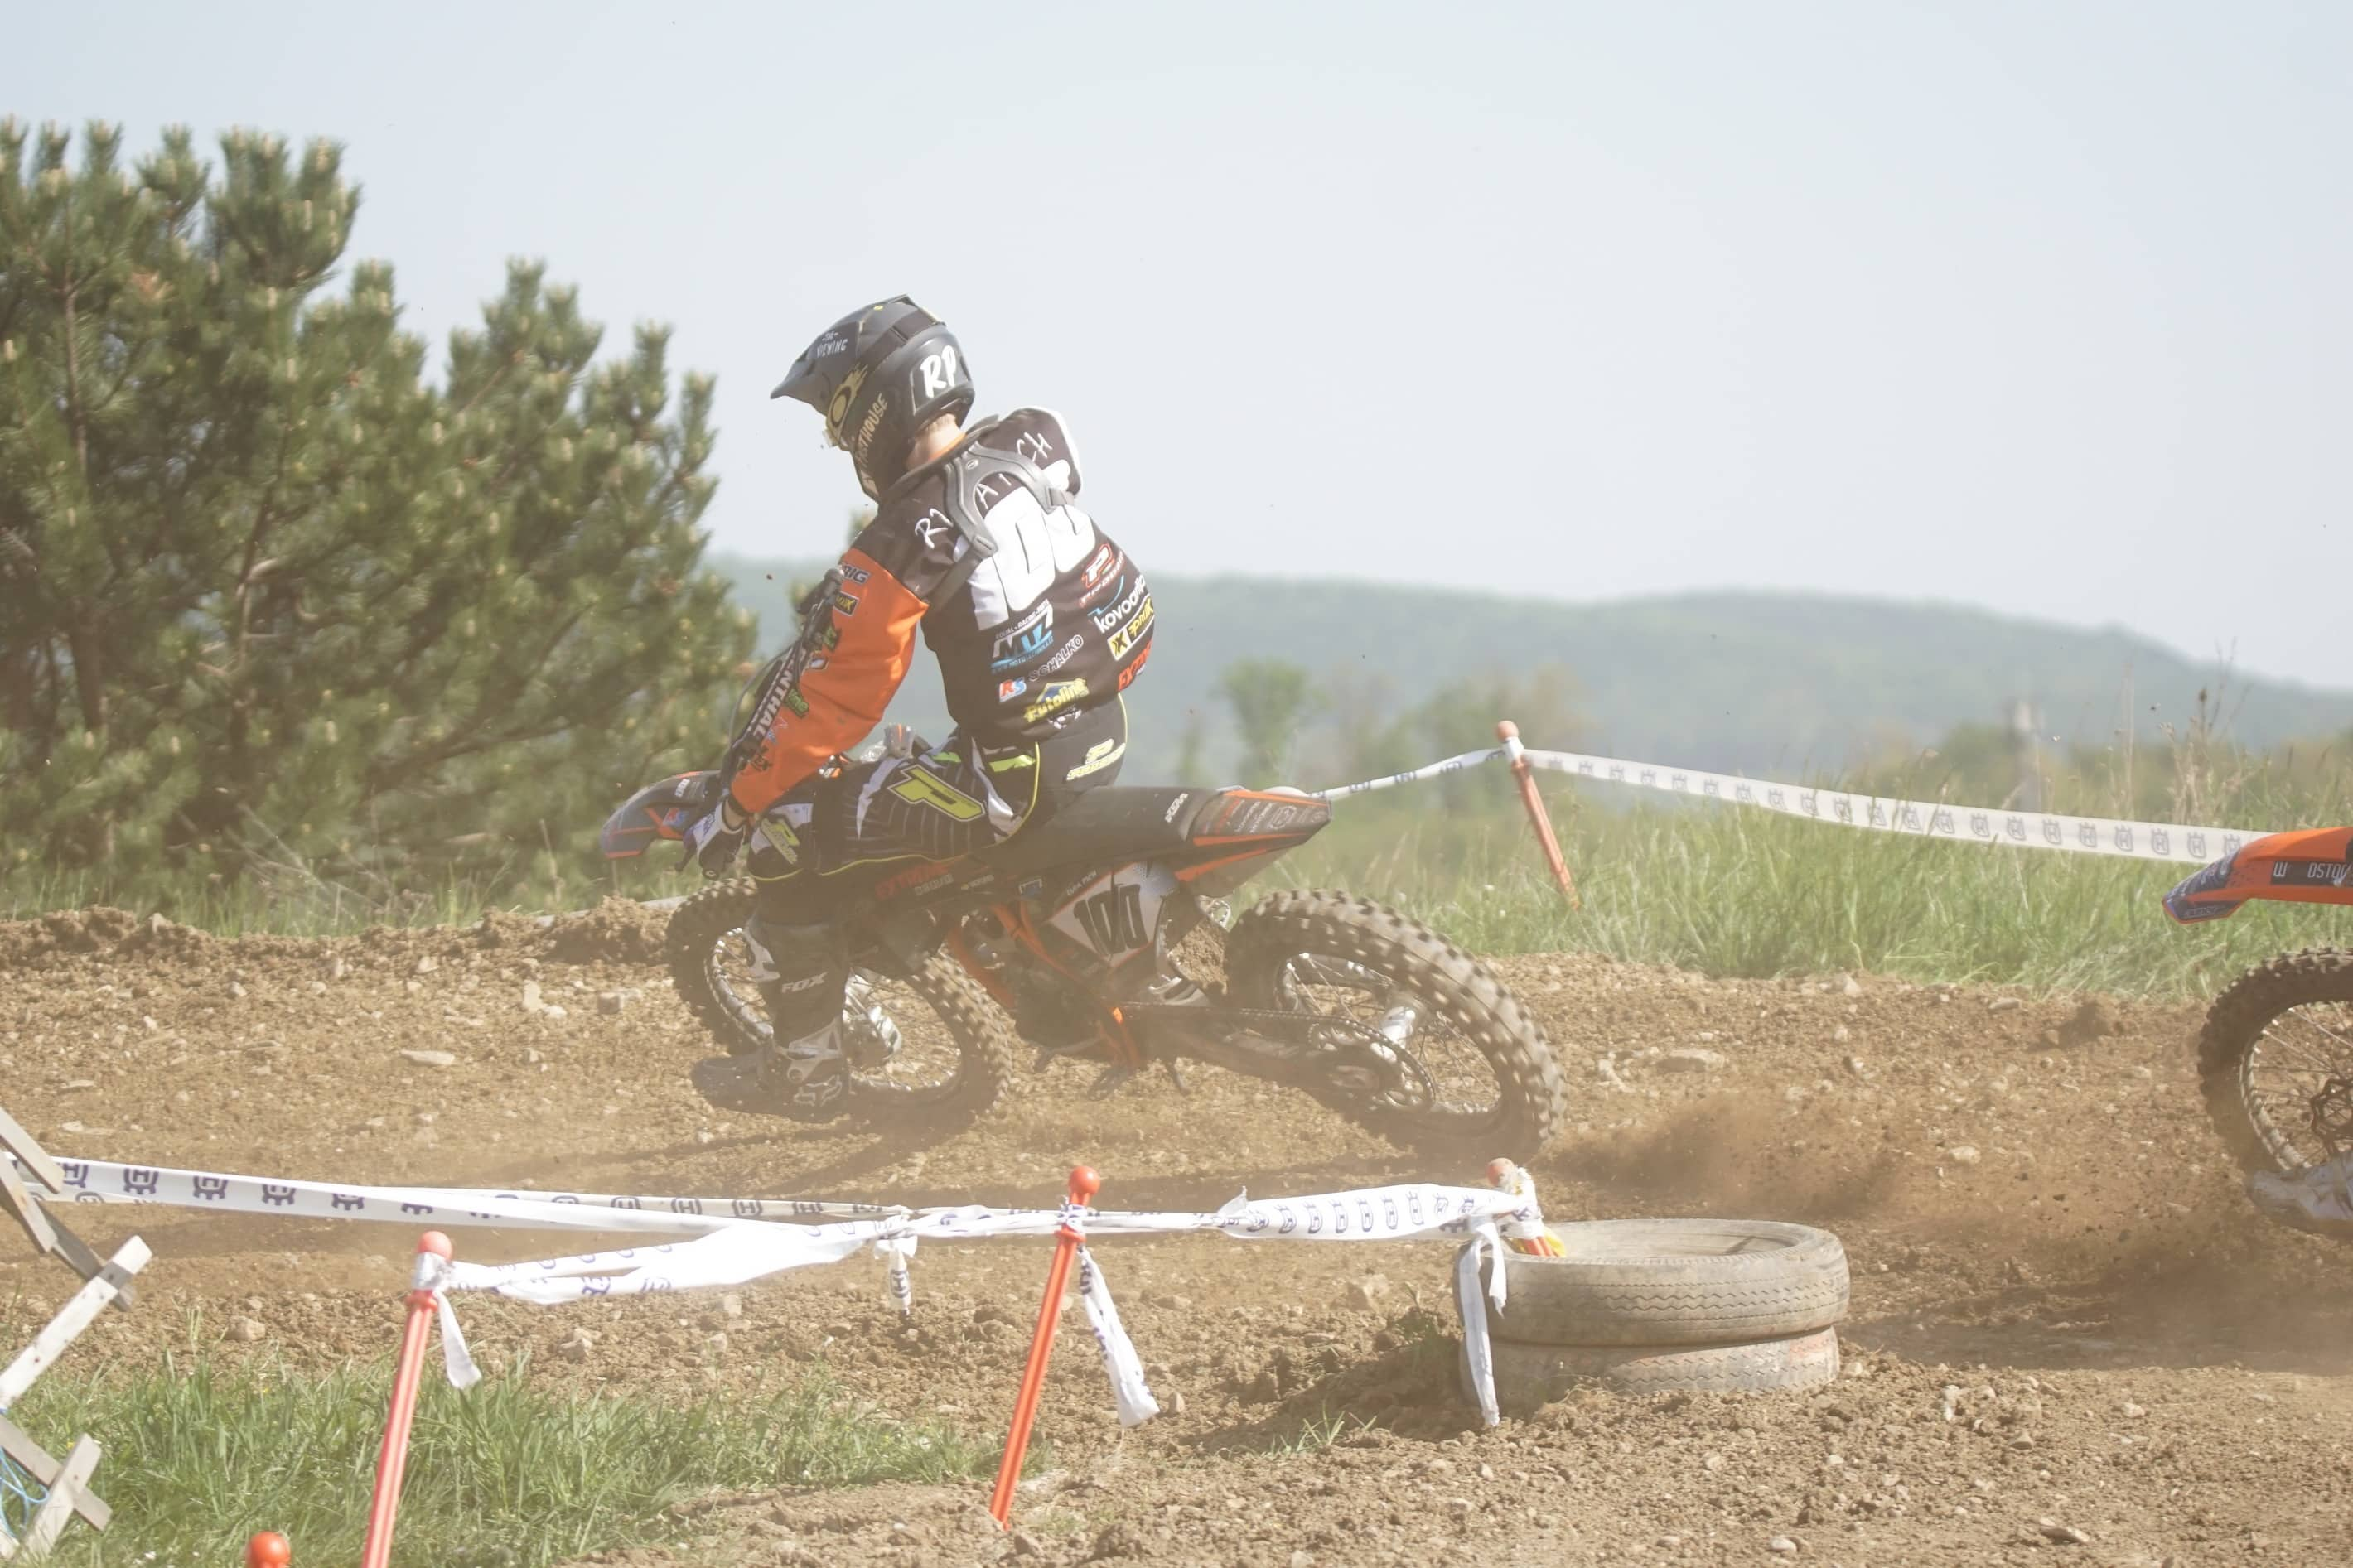 DSC 795_Moto Cross Sittendorf Teil1 am 29.04.2018